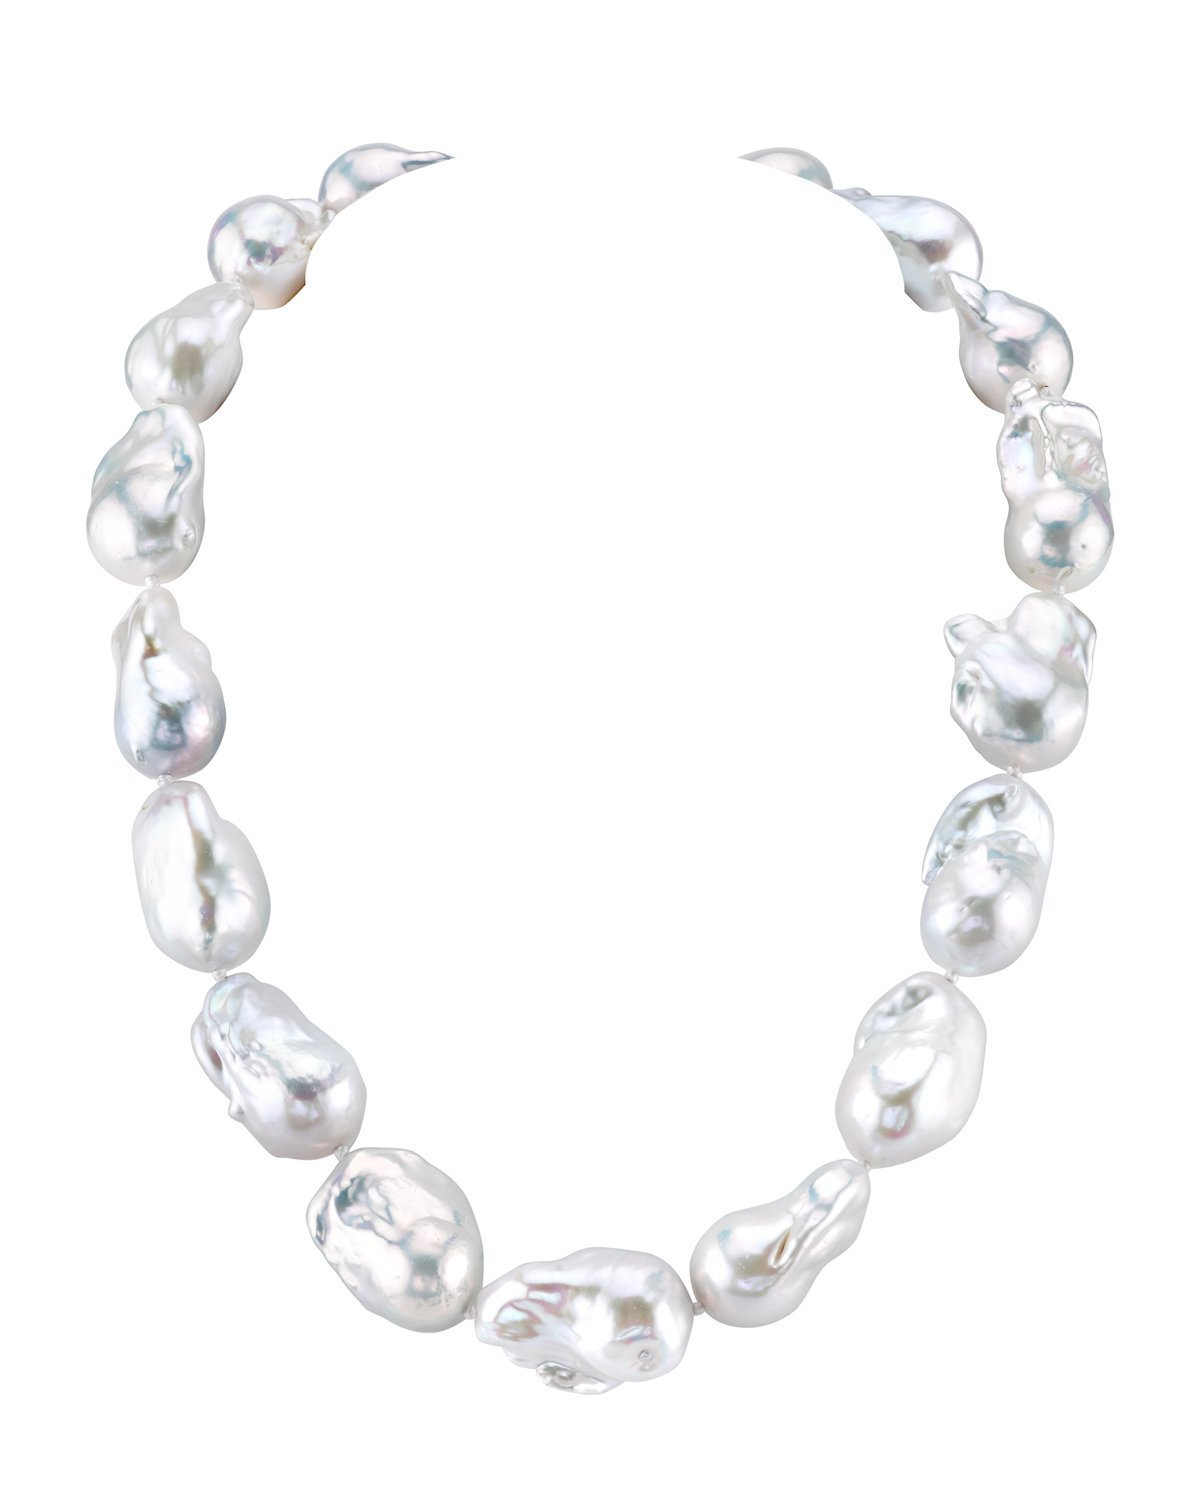 THE PEARL SOURCE Baroque Shaped 14-17mm White Freshwater Cultured Pearl Necklace for Women in 36'' Opera Length